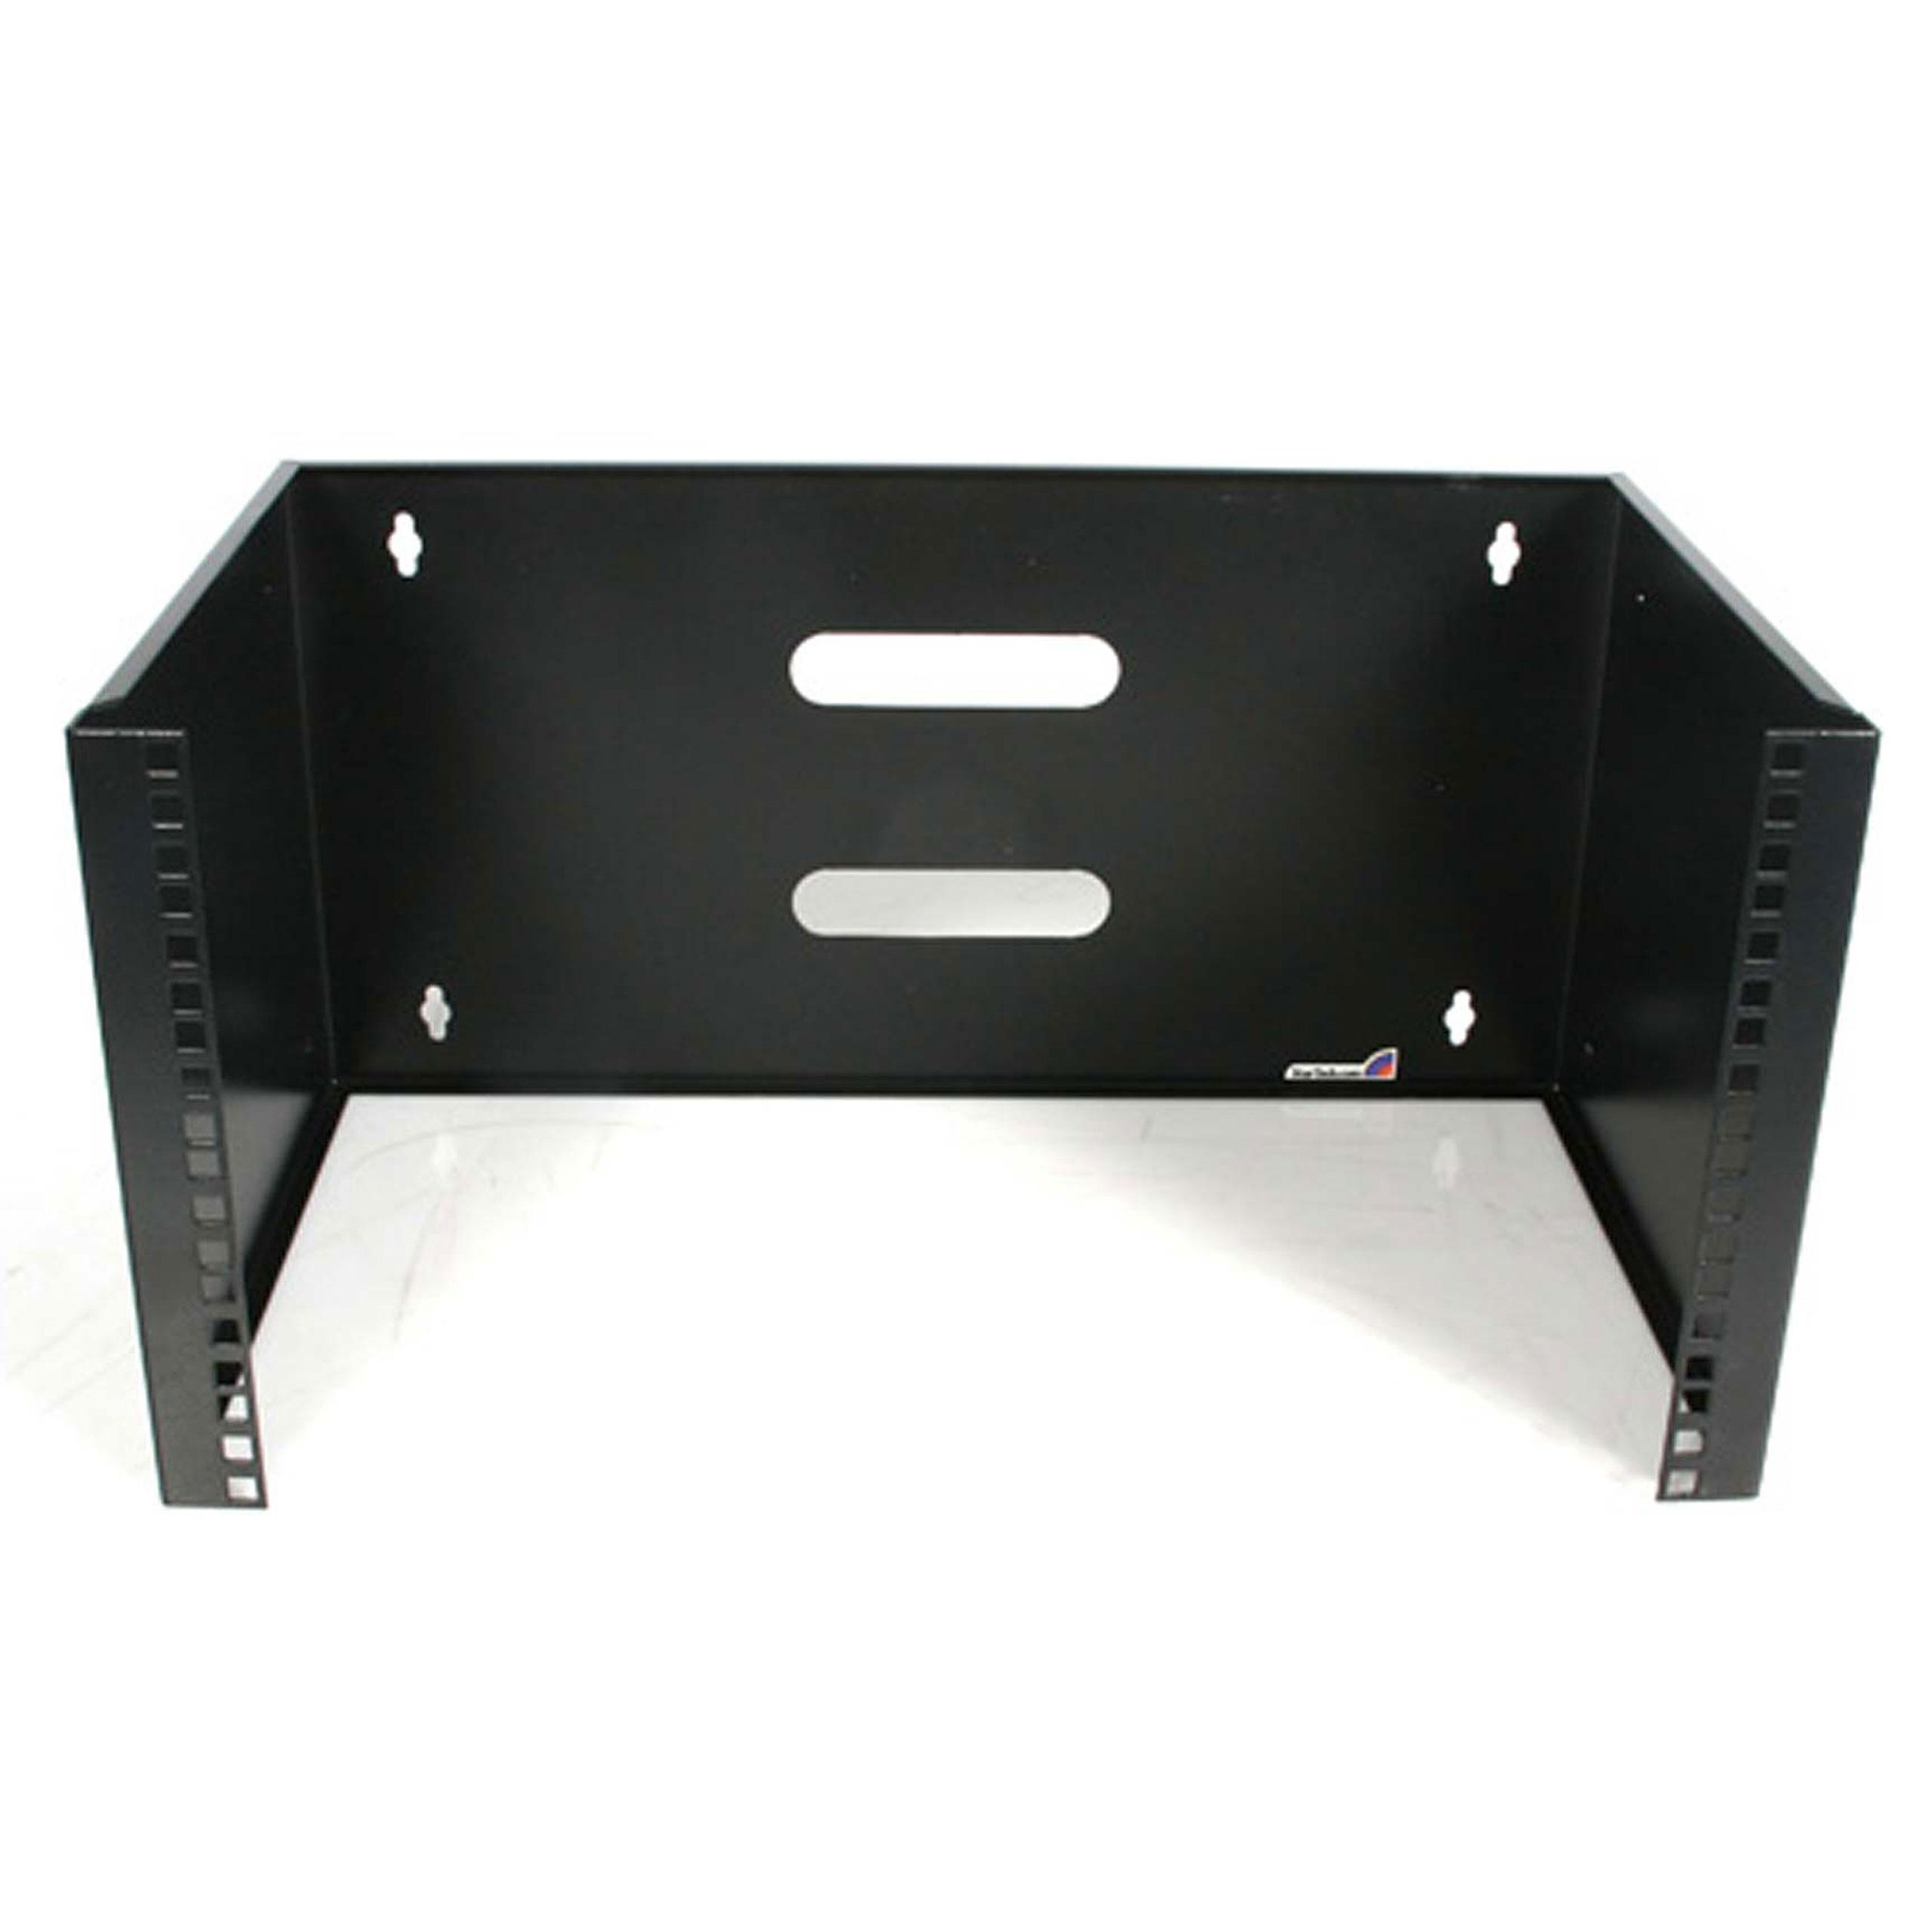 STARTECH.COM 12in Deep Wall Mounting Bracket For Patch